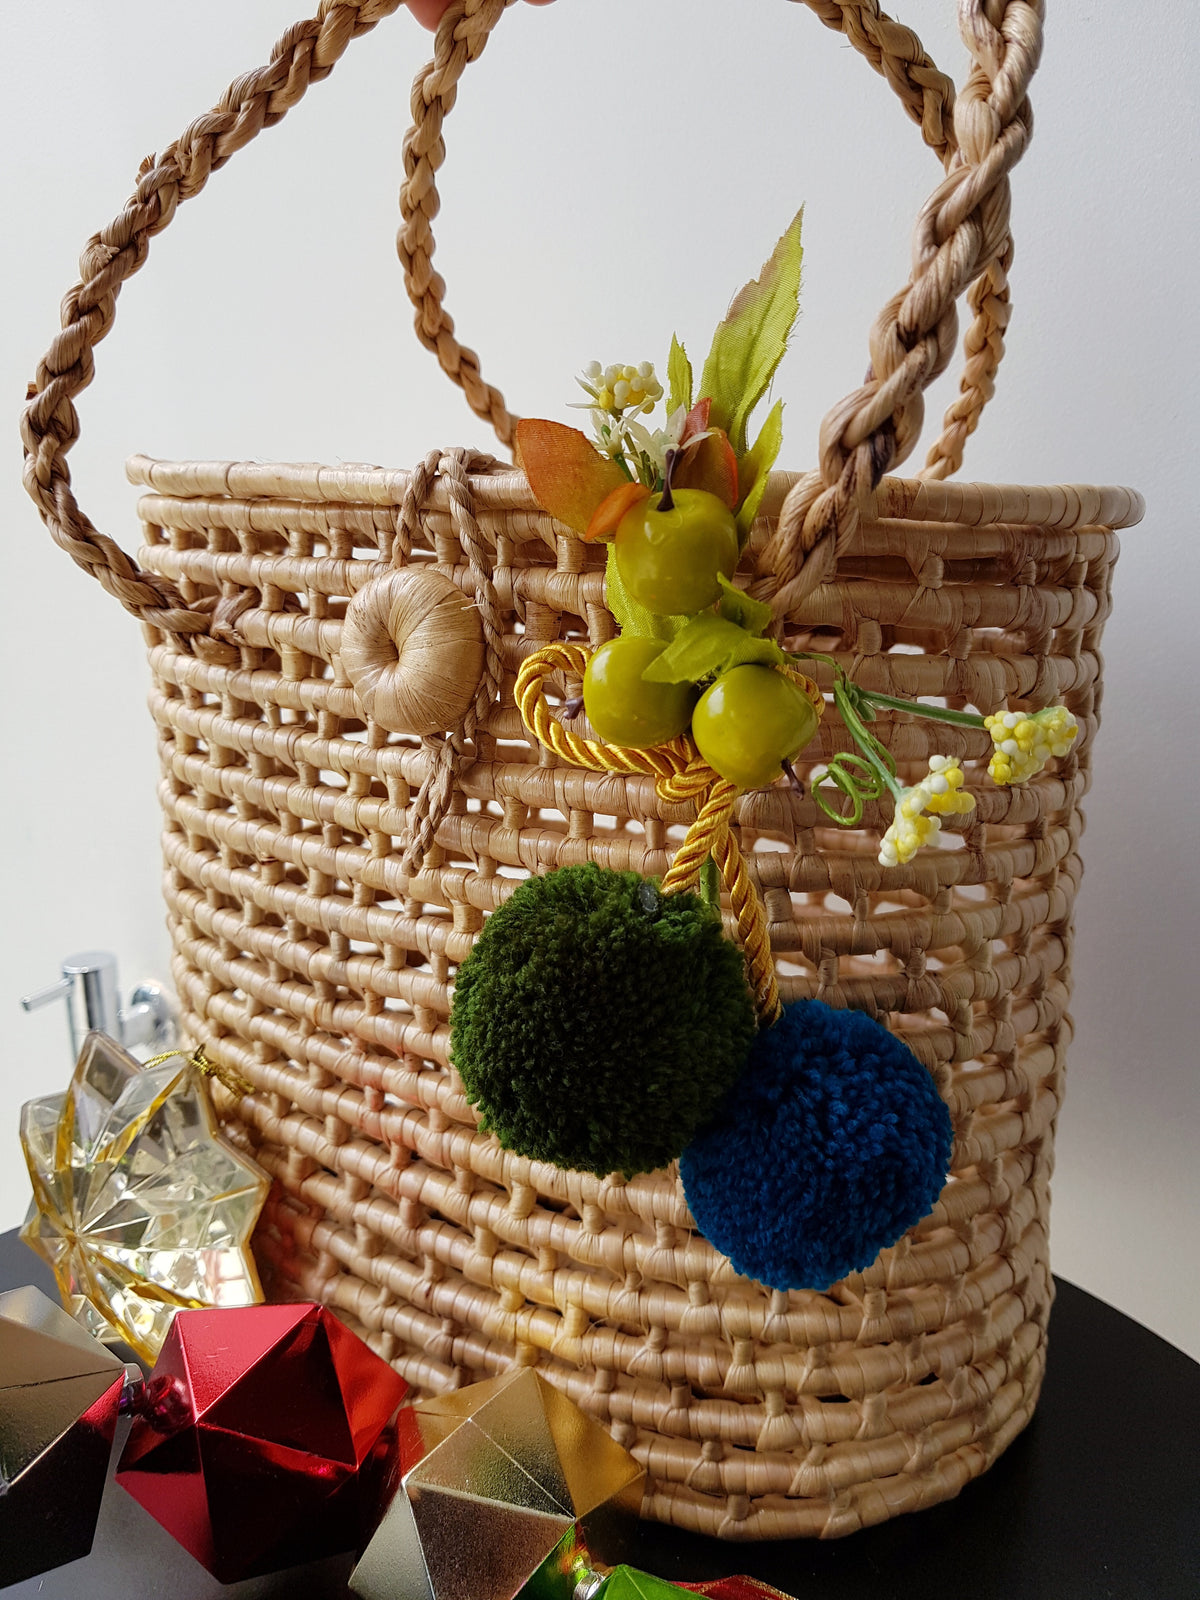 Wira Shopping/Picnic Basket